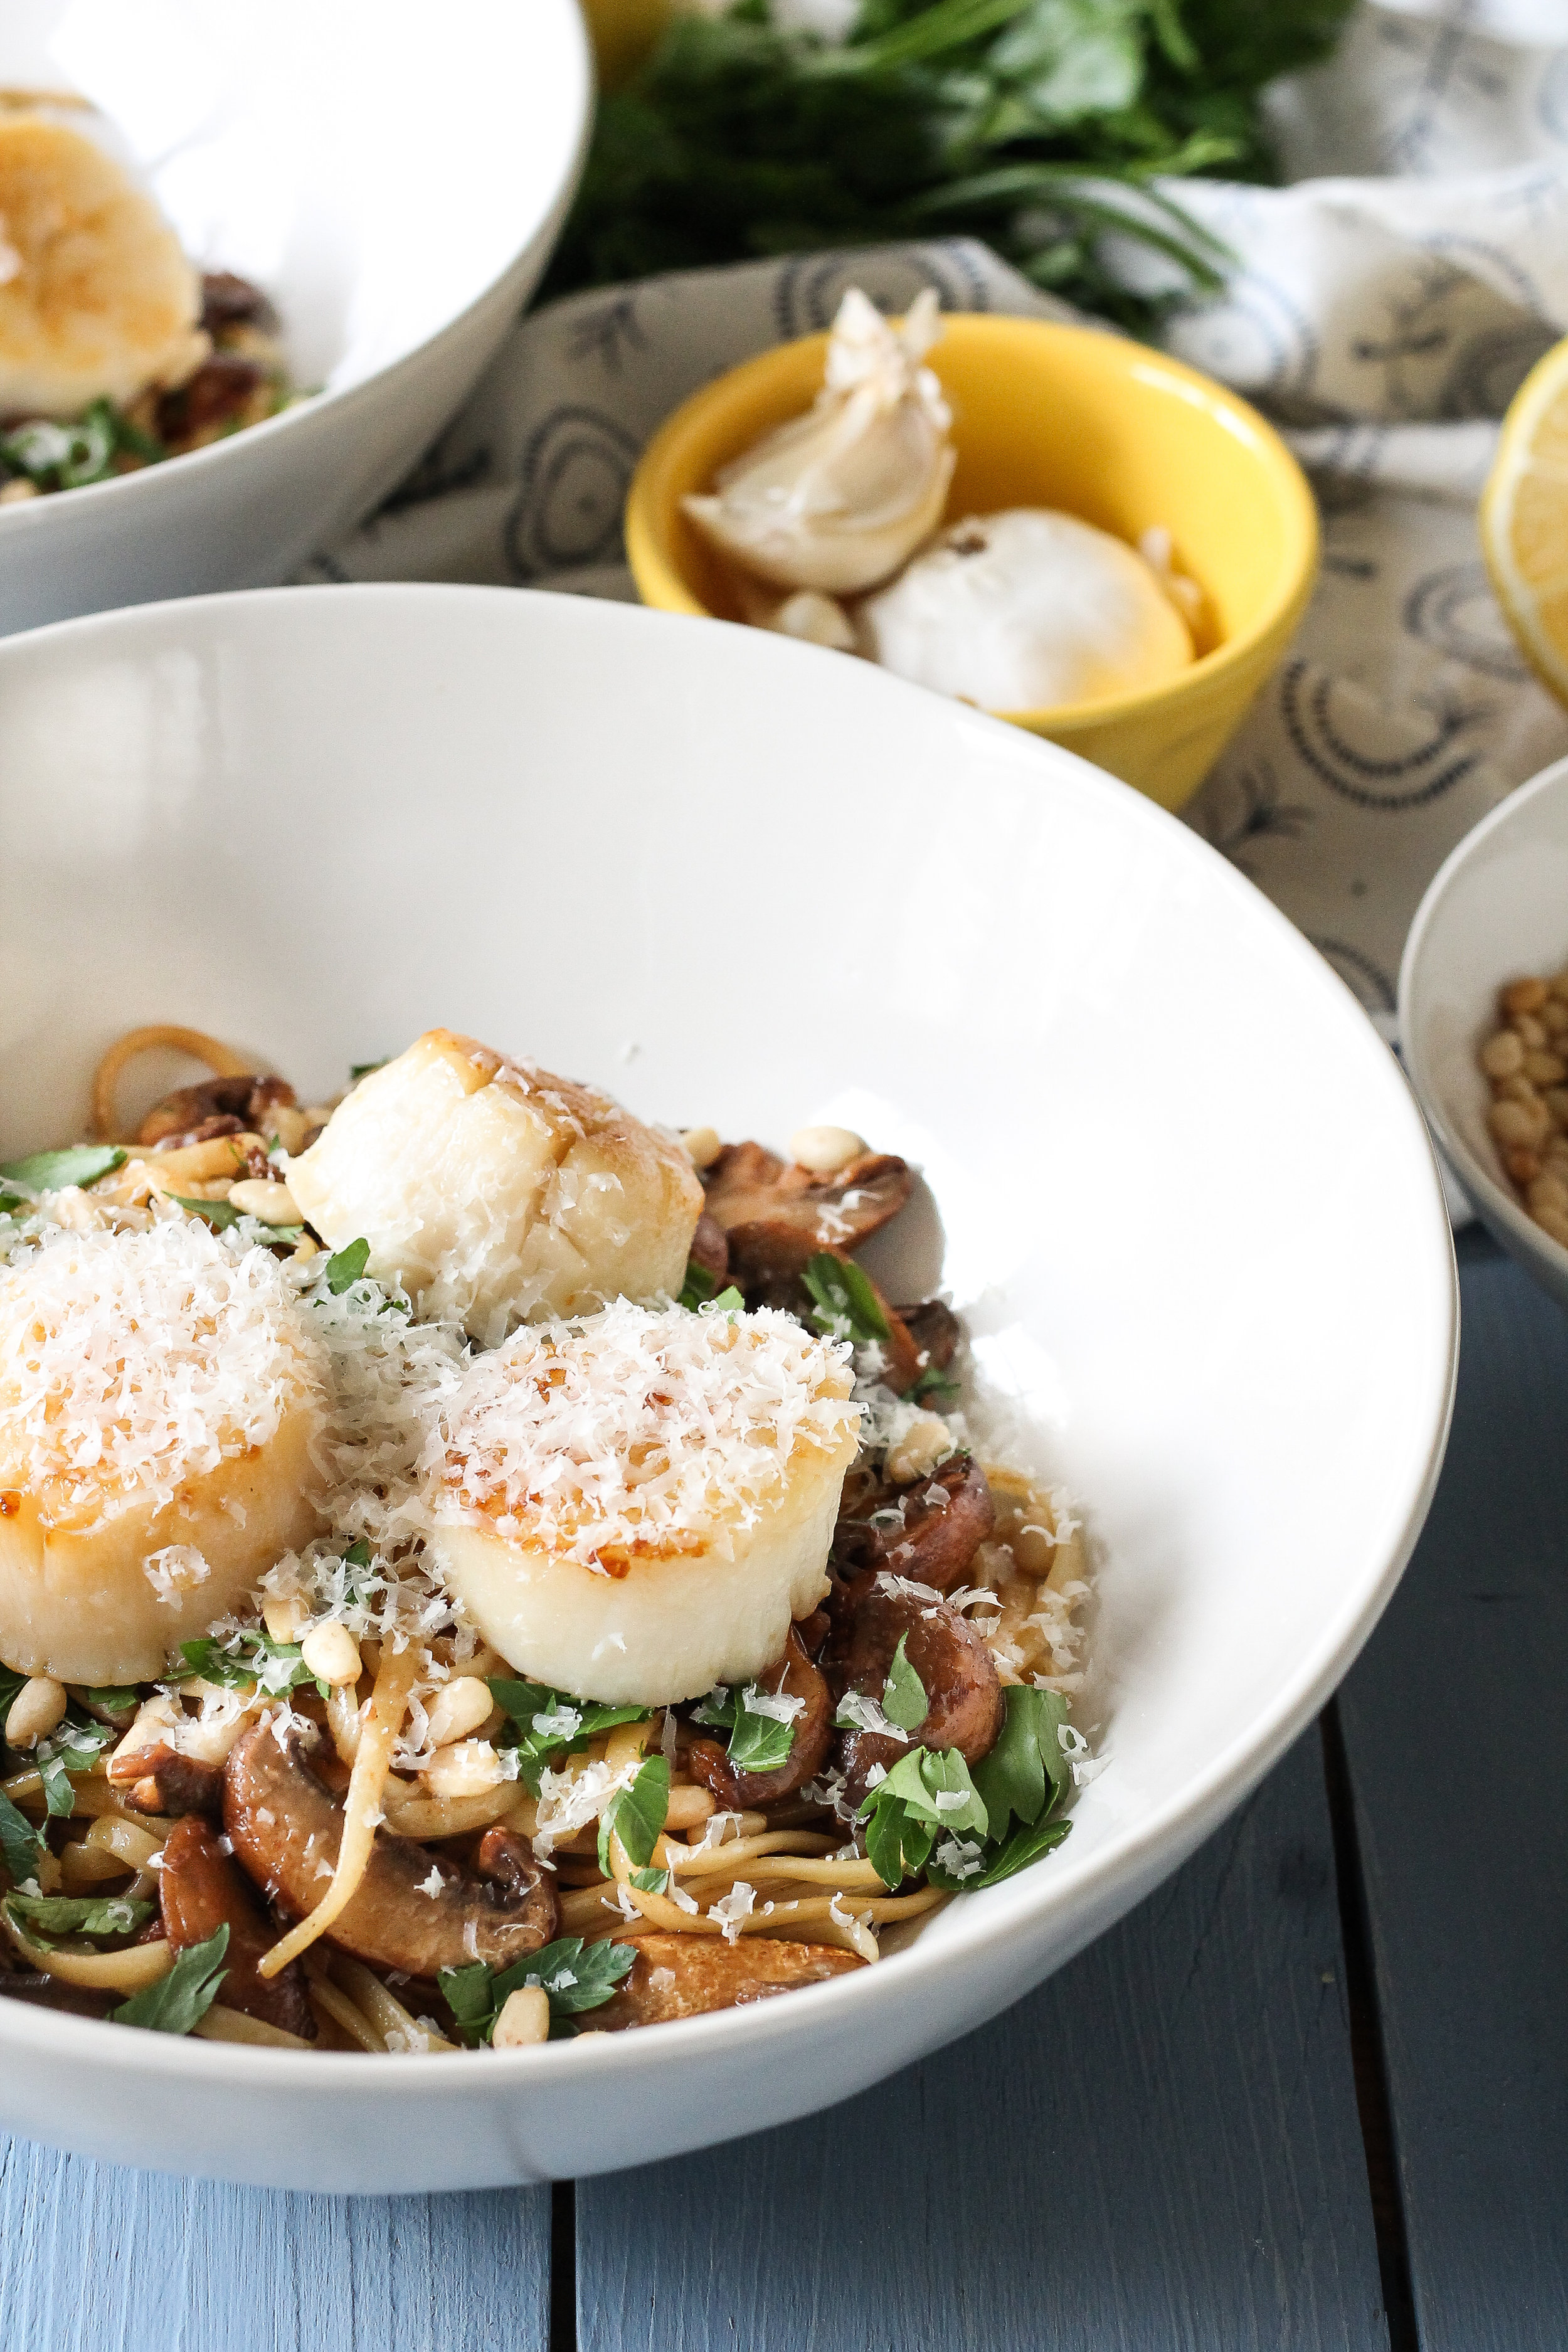 Linguine with Parsley, Mushrooms, Pine Nuts & Scallops makes the perfect date-night dinner at home!  Find the quick and simple recipe at www.pedanticfoodie.com!